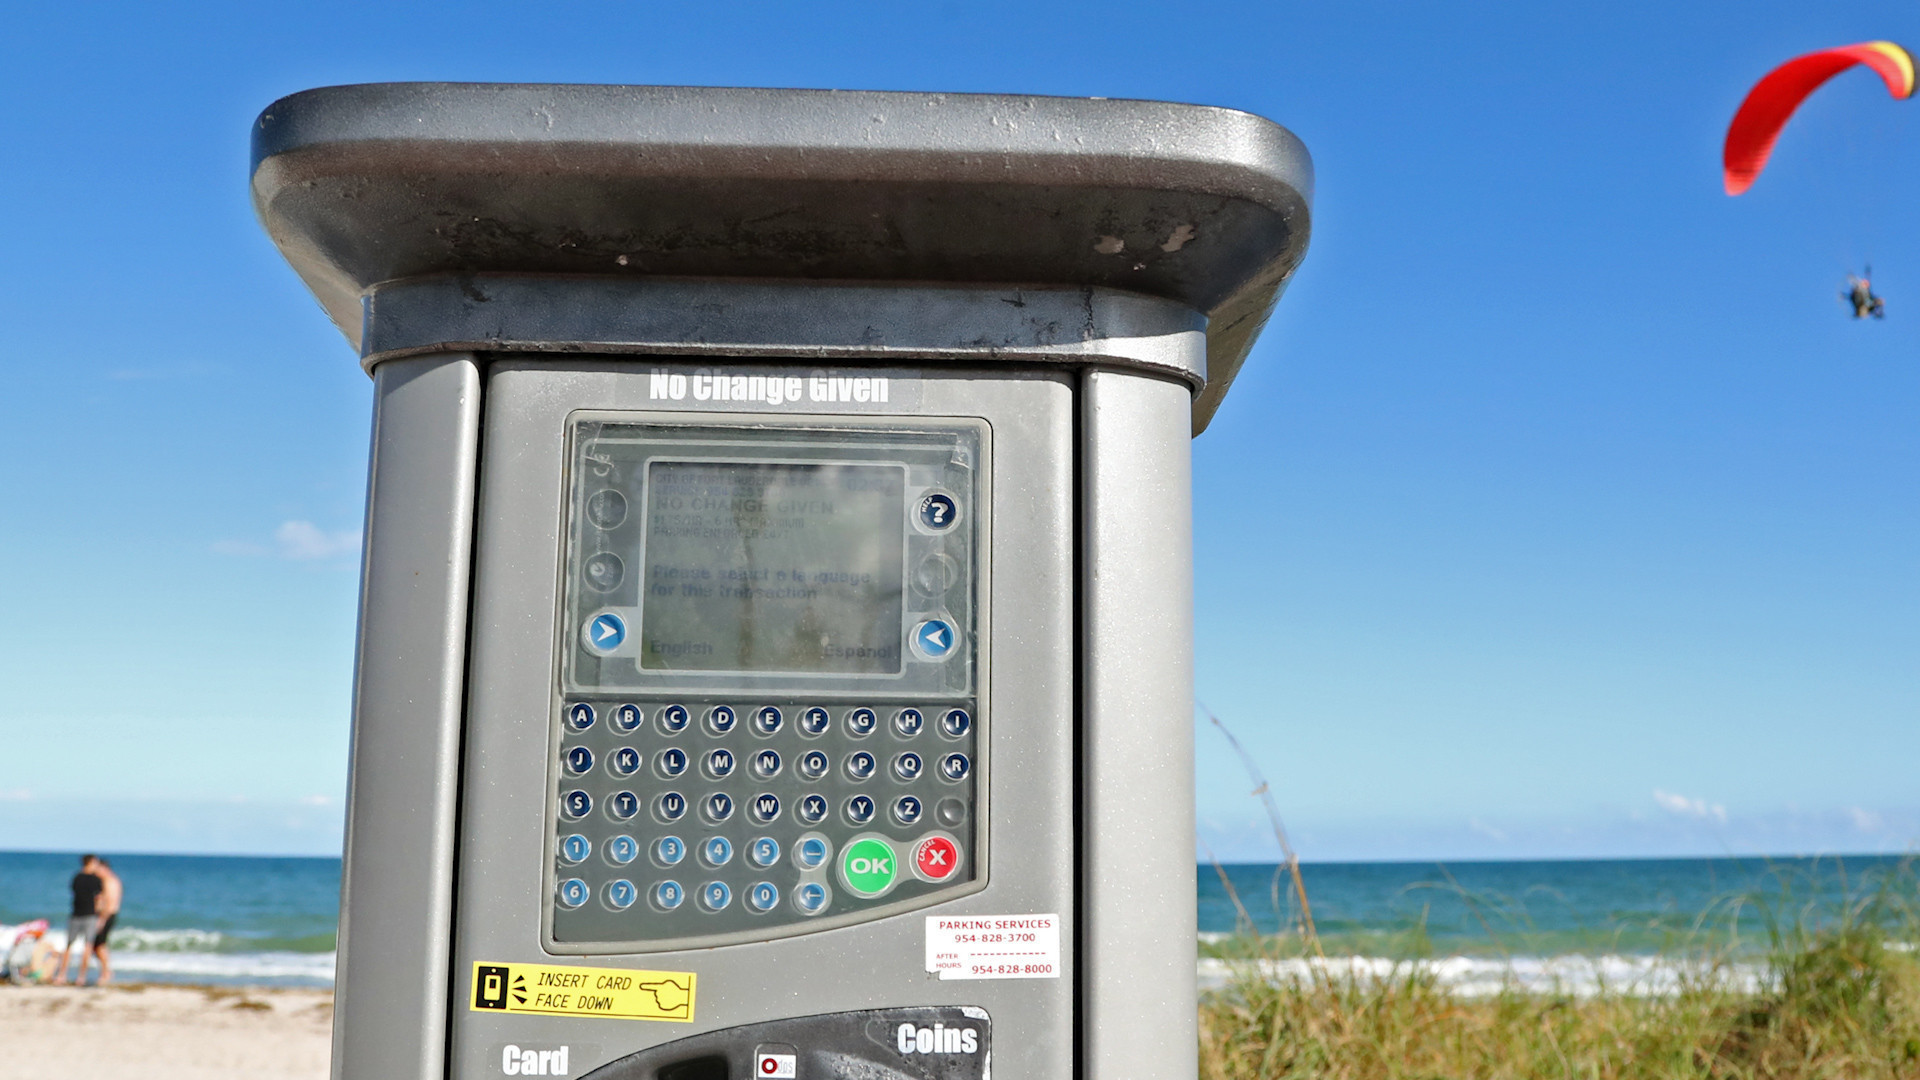 For The First Time In Six Years Hollywood Beach Has Doubled Its Parking Rates Bargain Pers Are Suggested To Look At Delray Or Pompano Sun